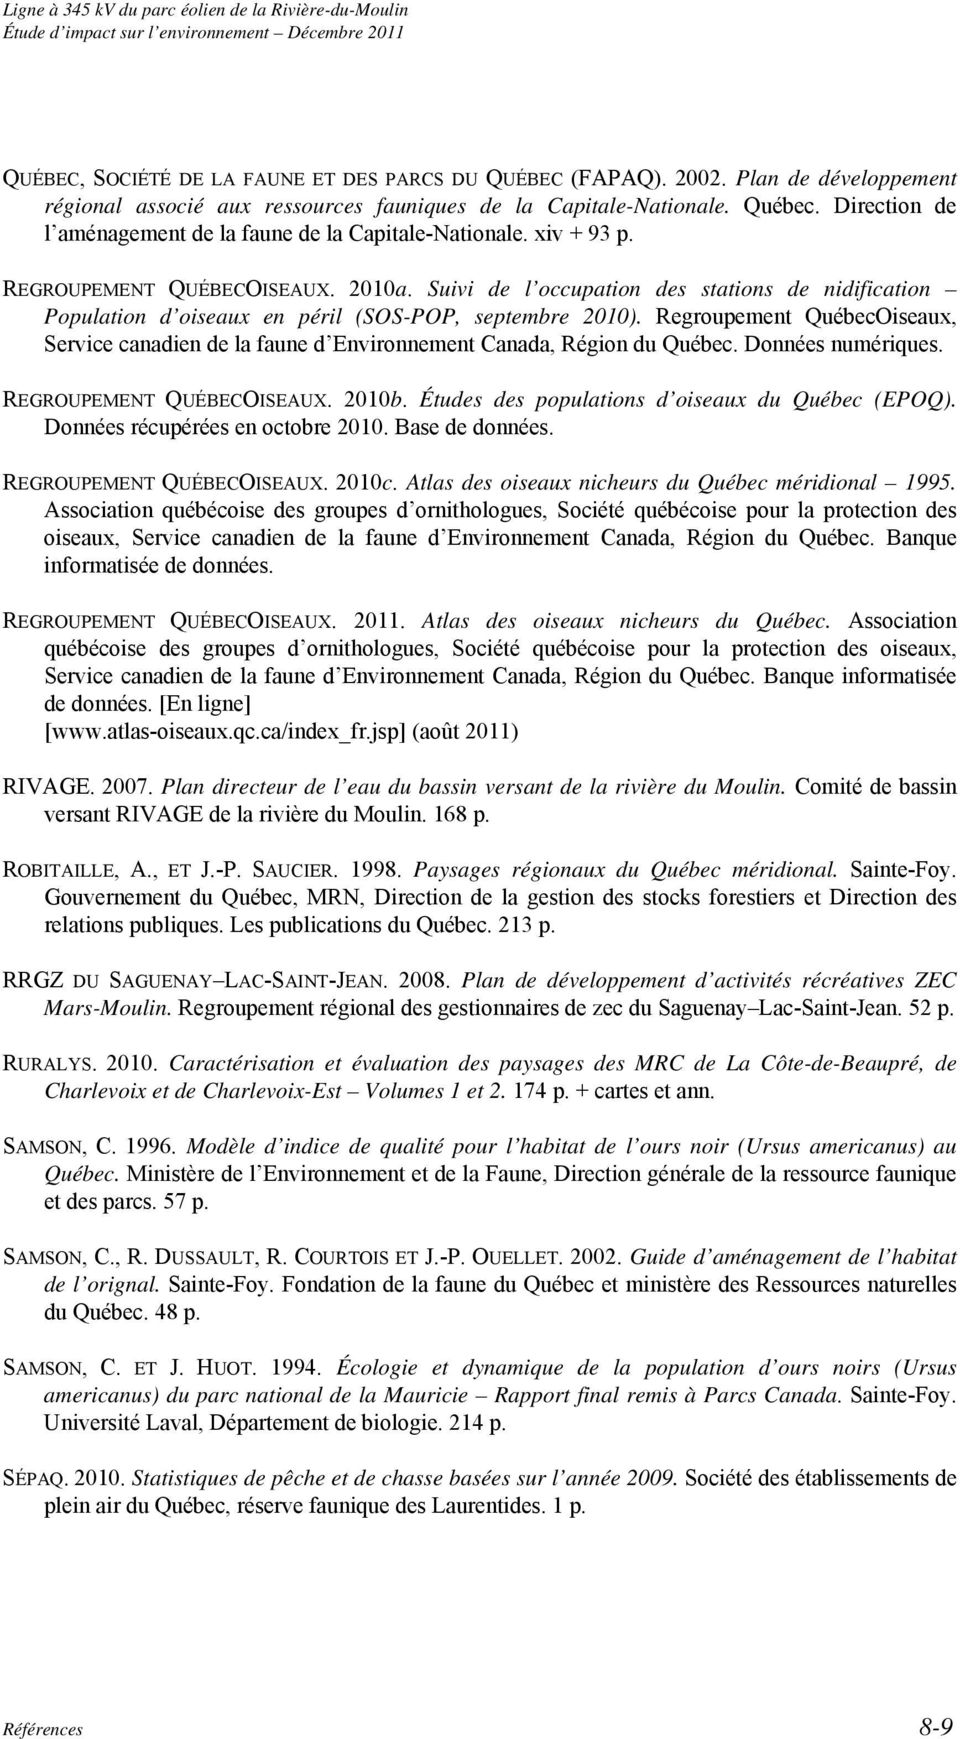 Suivi de l occupation des stations de nidification Population d oiseaux en péril (SOS-POP, septembre 2010).